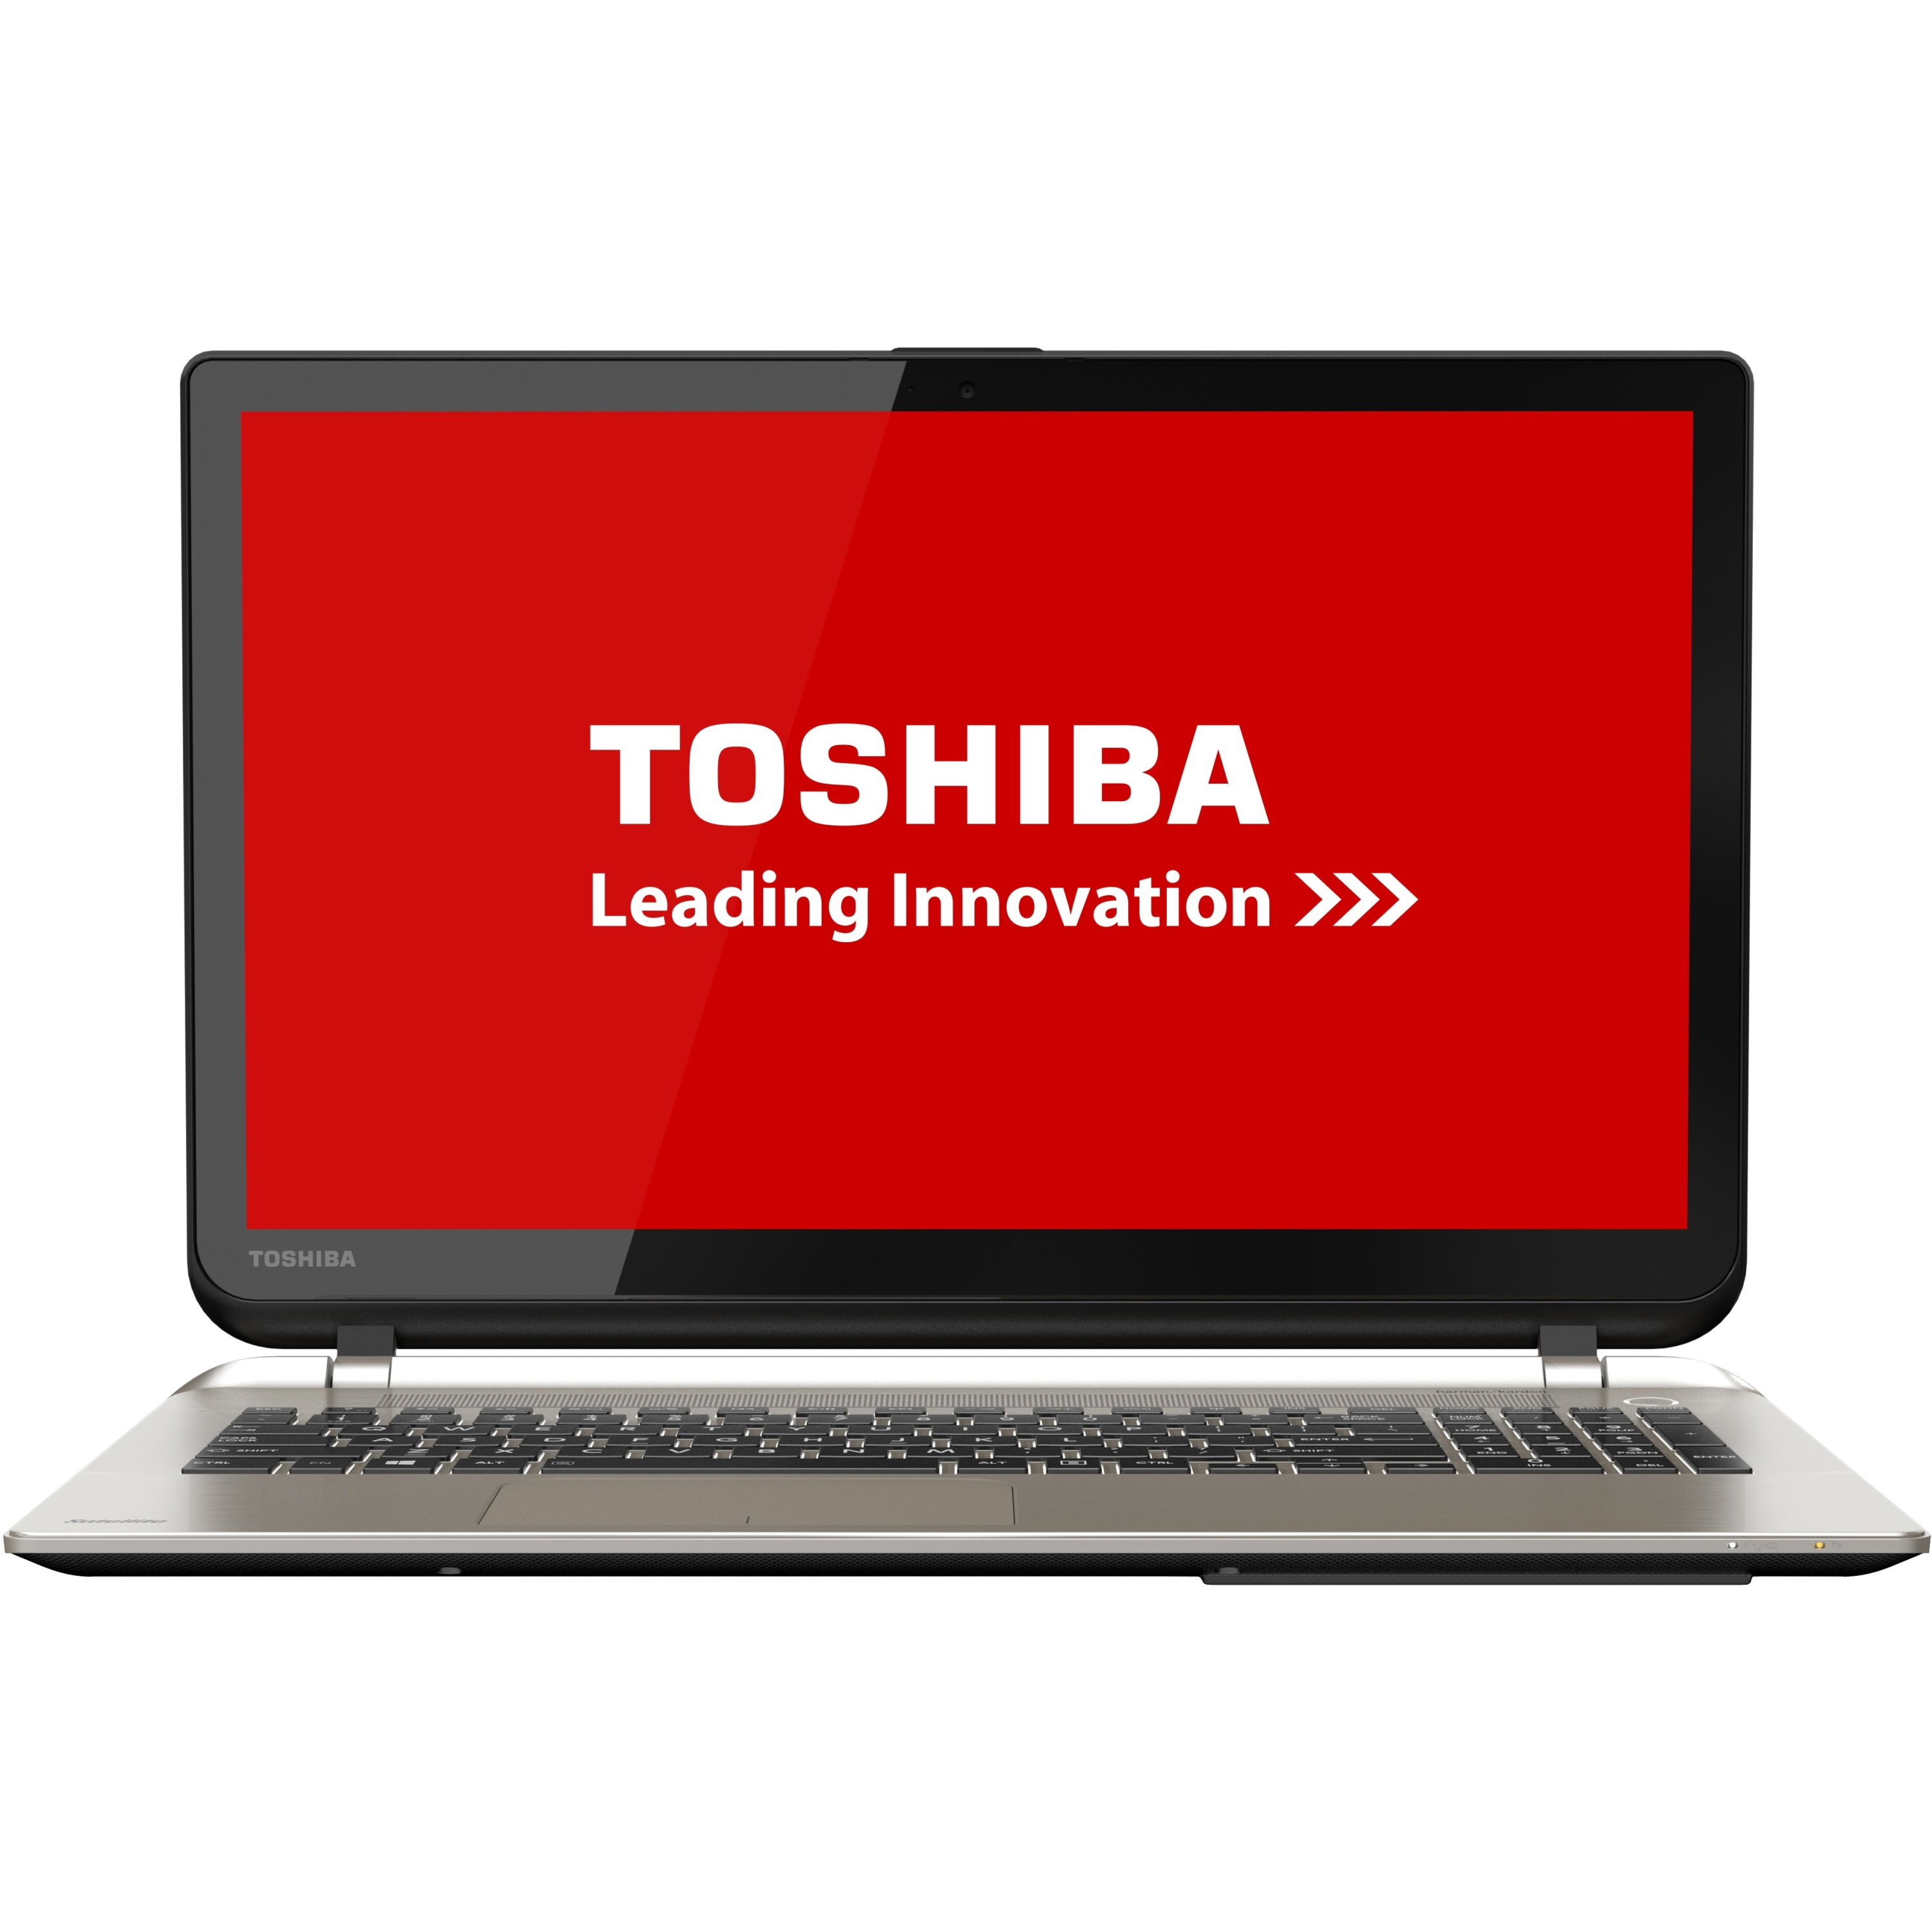 "Toshiba Satellite S55T-B5233 15.6"" Touchscreen LCD Notebook - (Refurbished)"